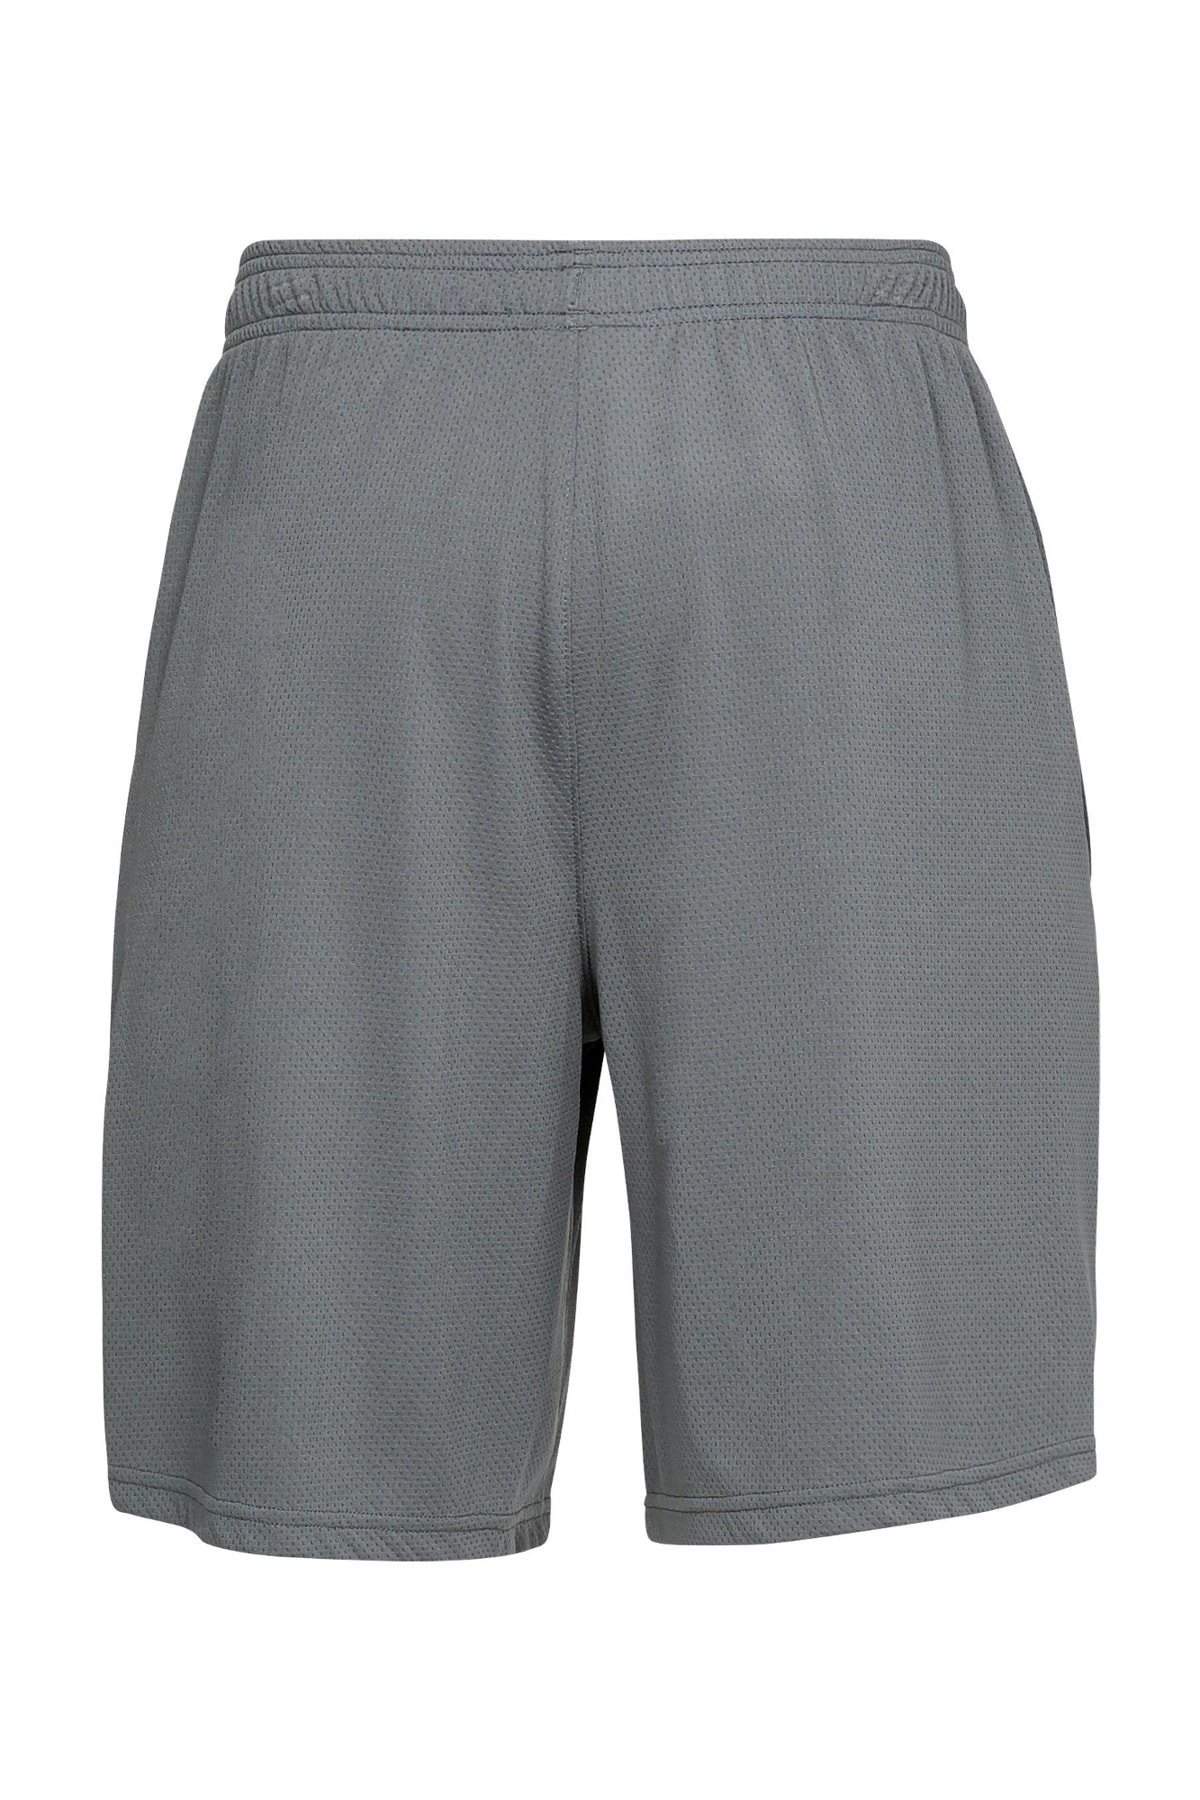 Under Armour Erkek Spor Şort - UA Tech Mesh Short - 1328705-012 2